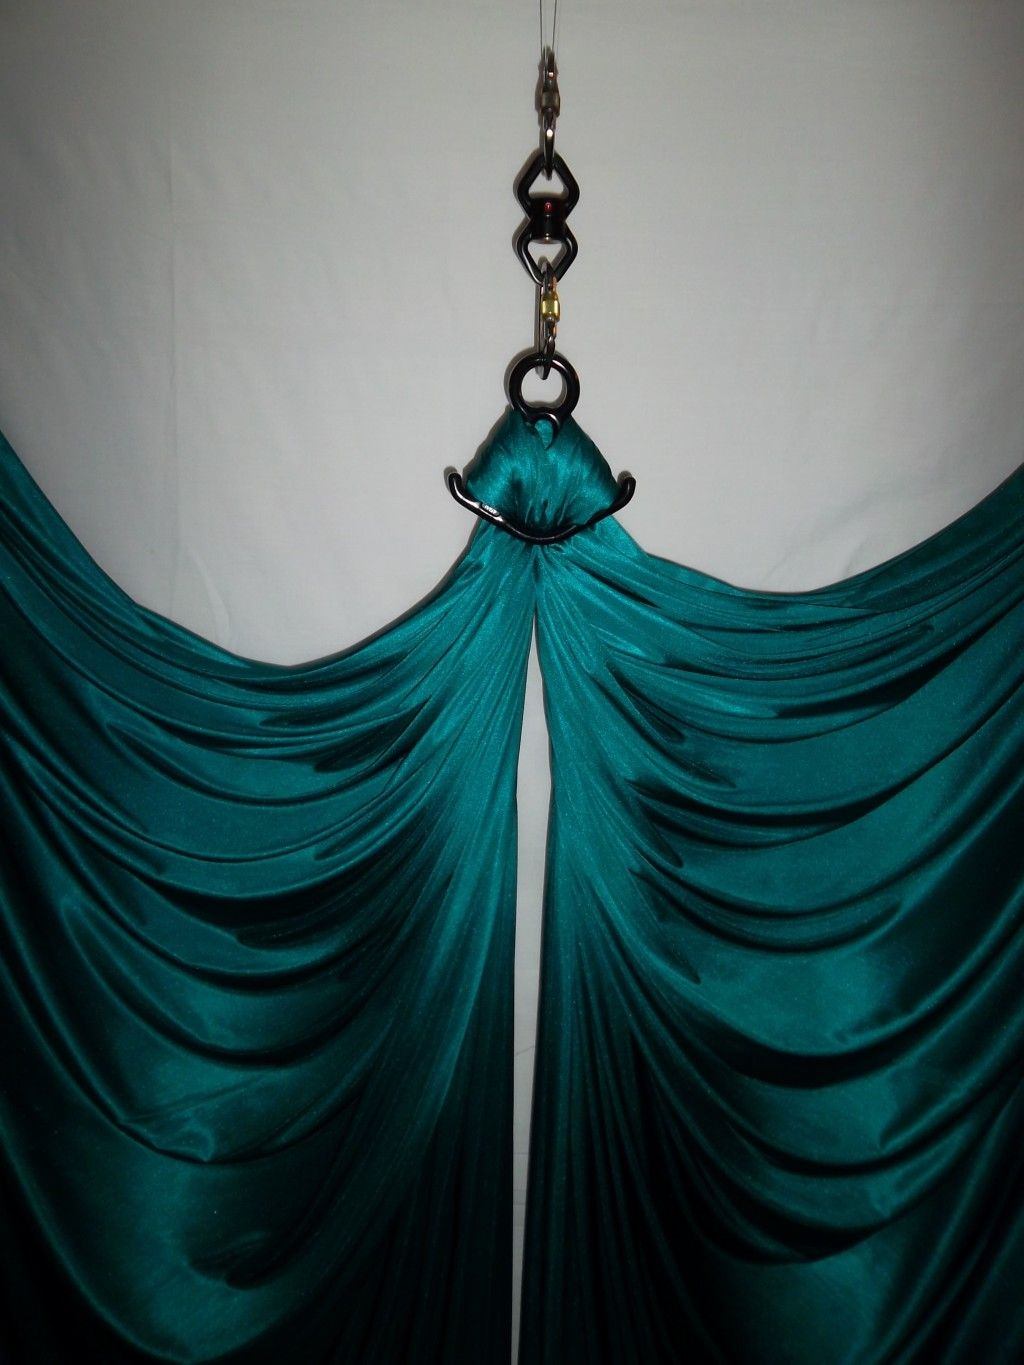 Aerial Silk Rig Complete Aerial Silk Rig For Sale Bayaerialists - Teal aerial silk with full rigging hardware circus equipment ebay 285 free shipping low